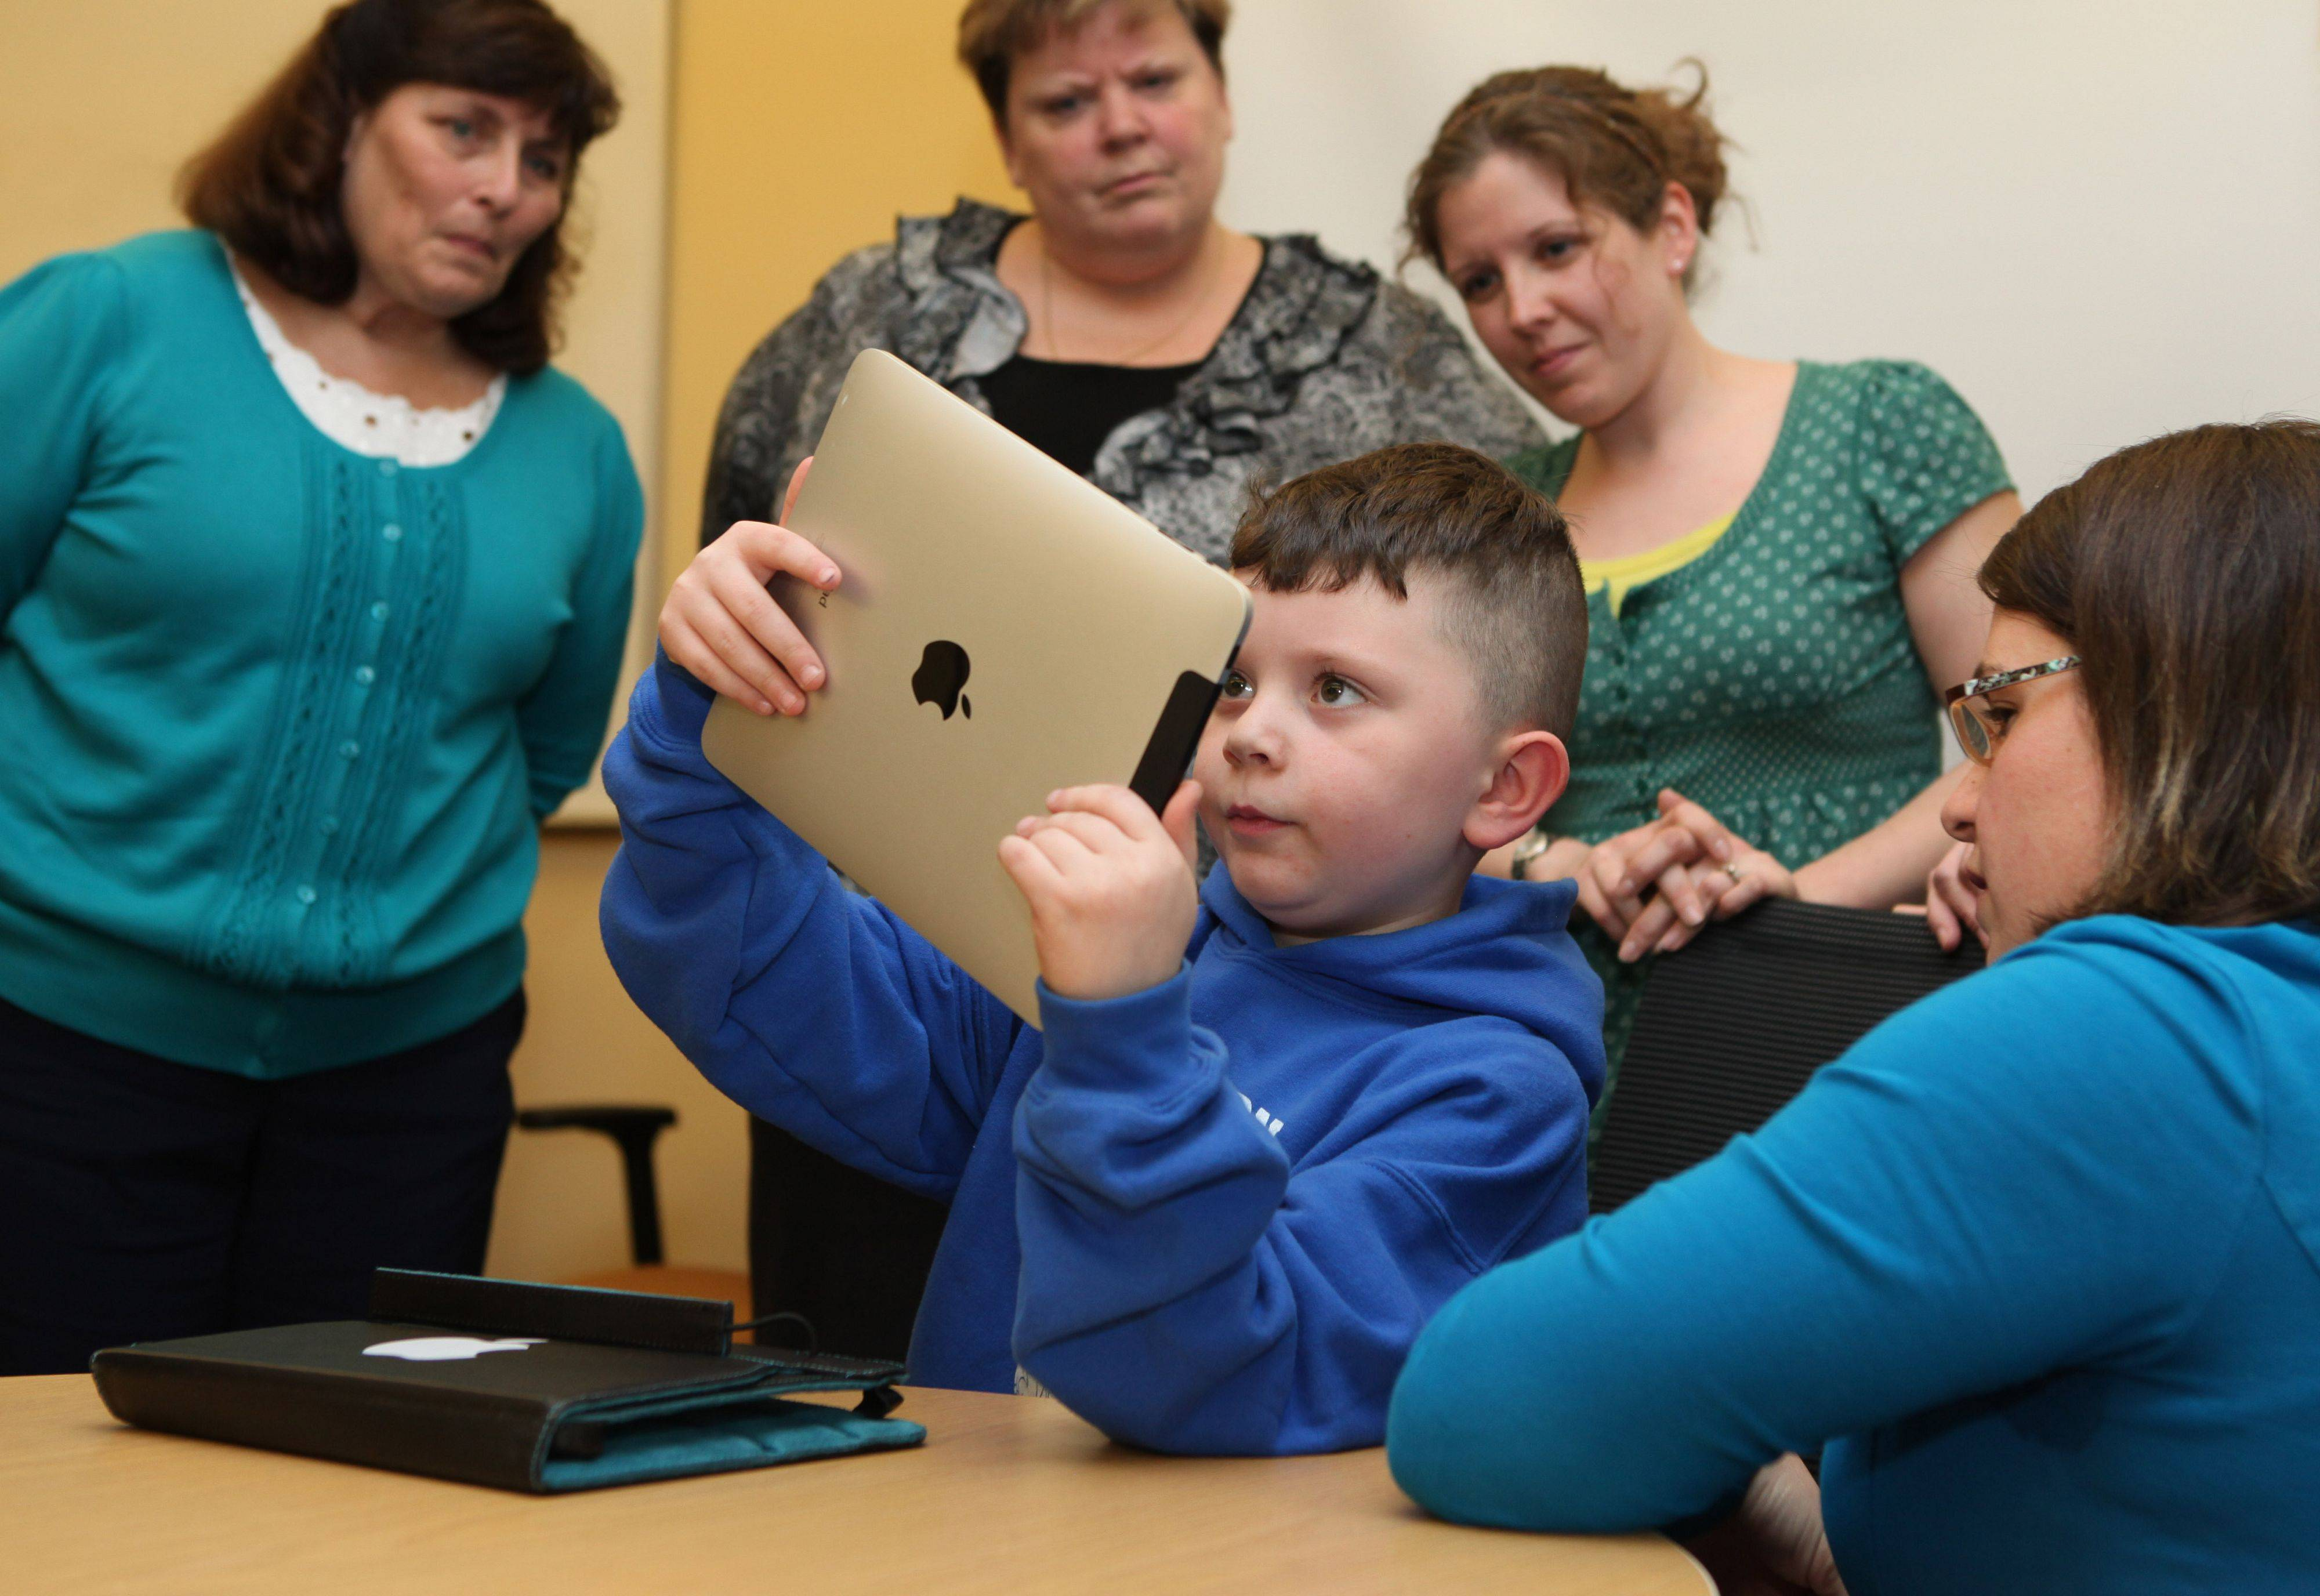 Kindergartner Lucius Rice, 6, center, demonstrates to Kindergarten teachers Sue Larue, left to right, Kelly McCarthy and Amy Himerl, how to uses an iPad in Auburn, Maine. The teachers were given iPads to try out in preparation for next year when nearly 300 kindergartners will be given their own iPad2s.